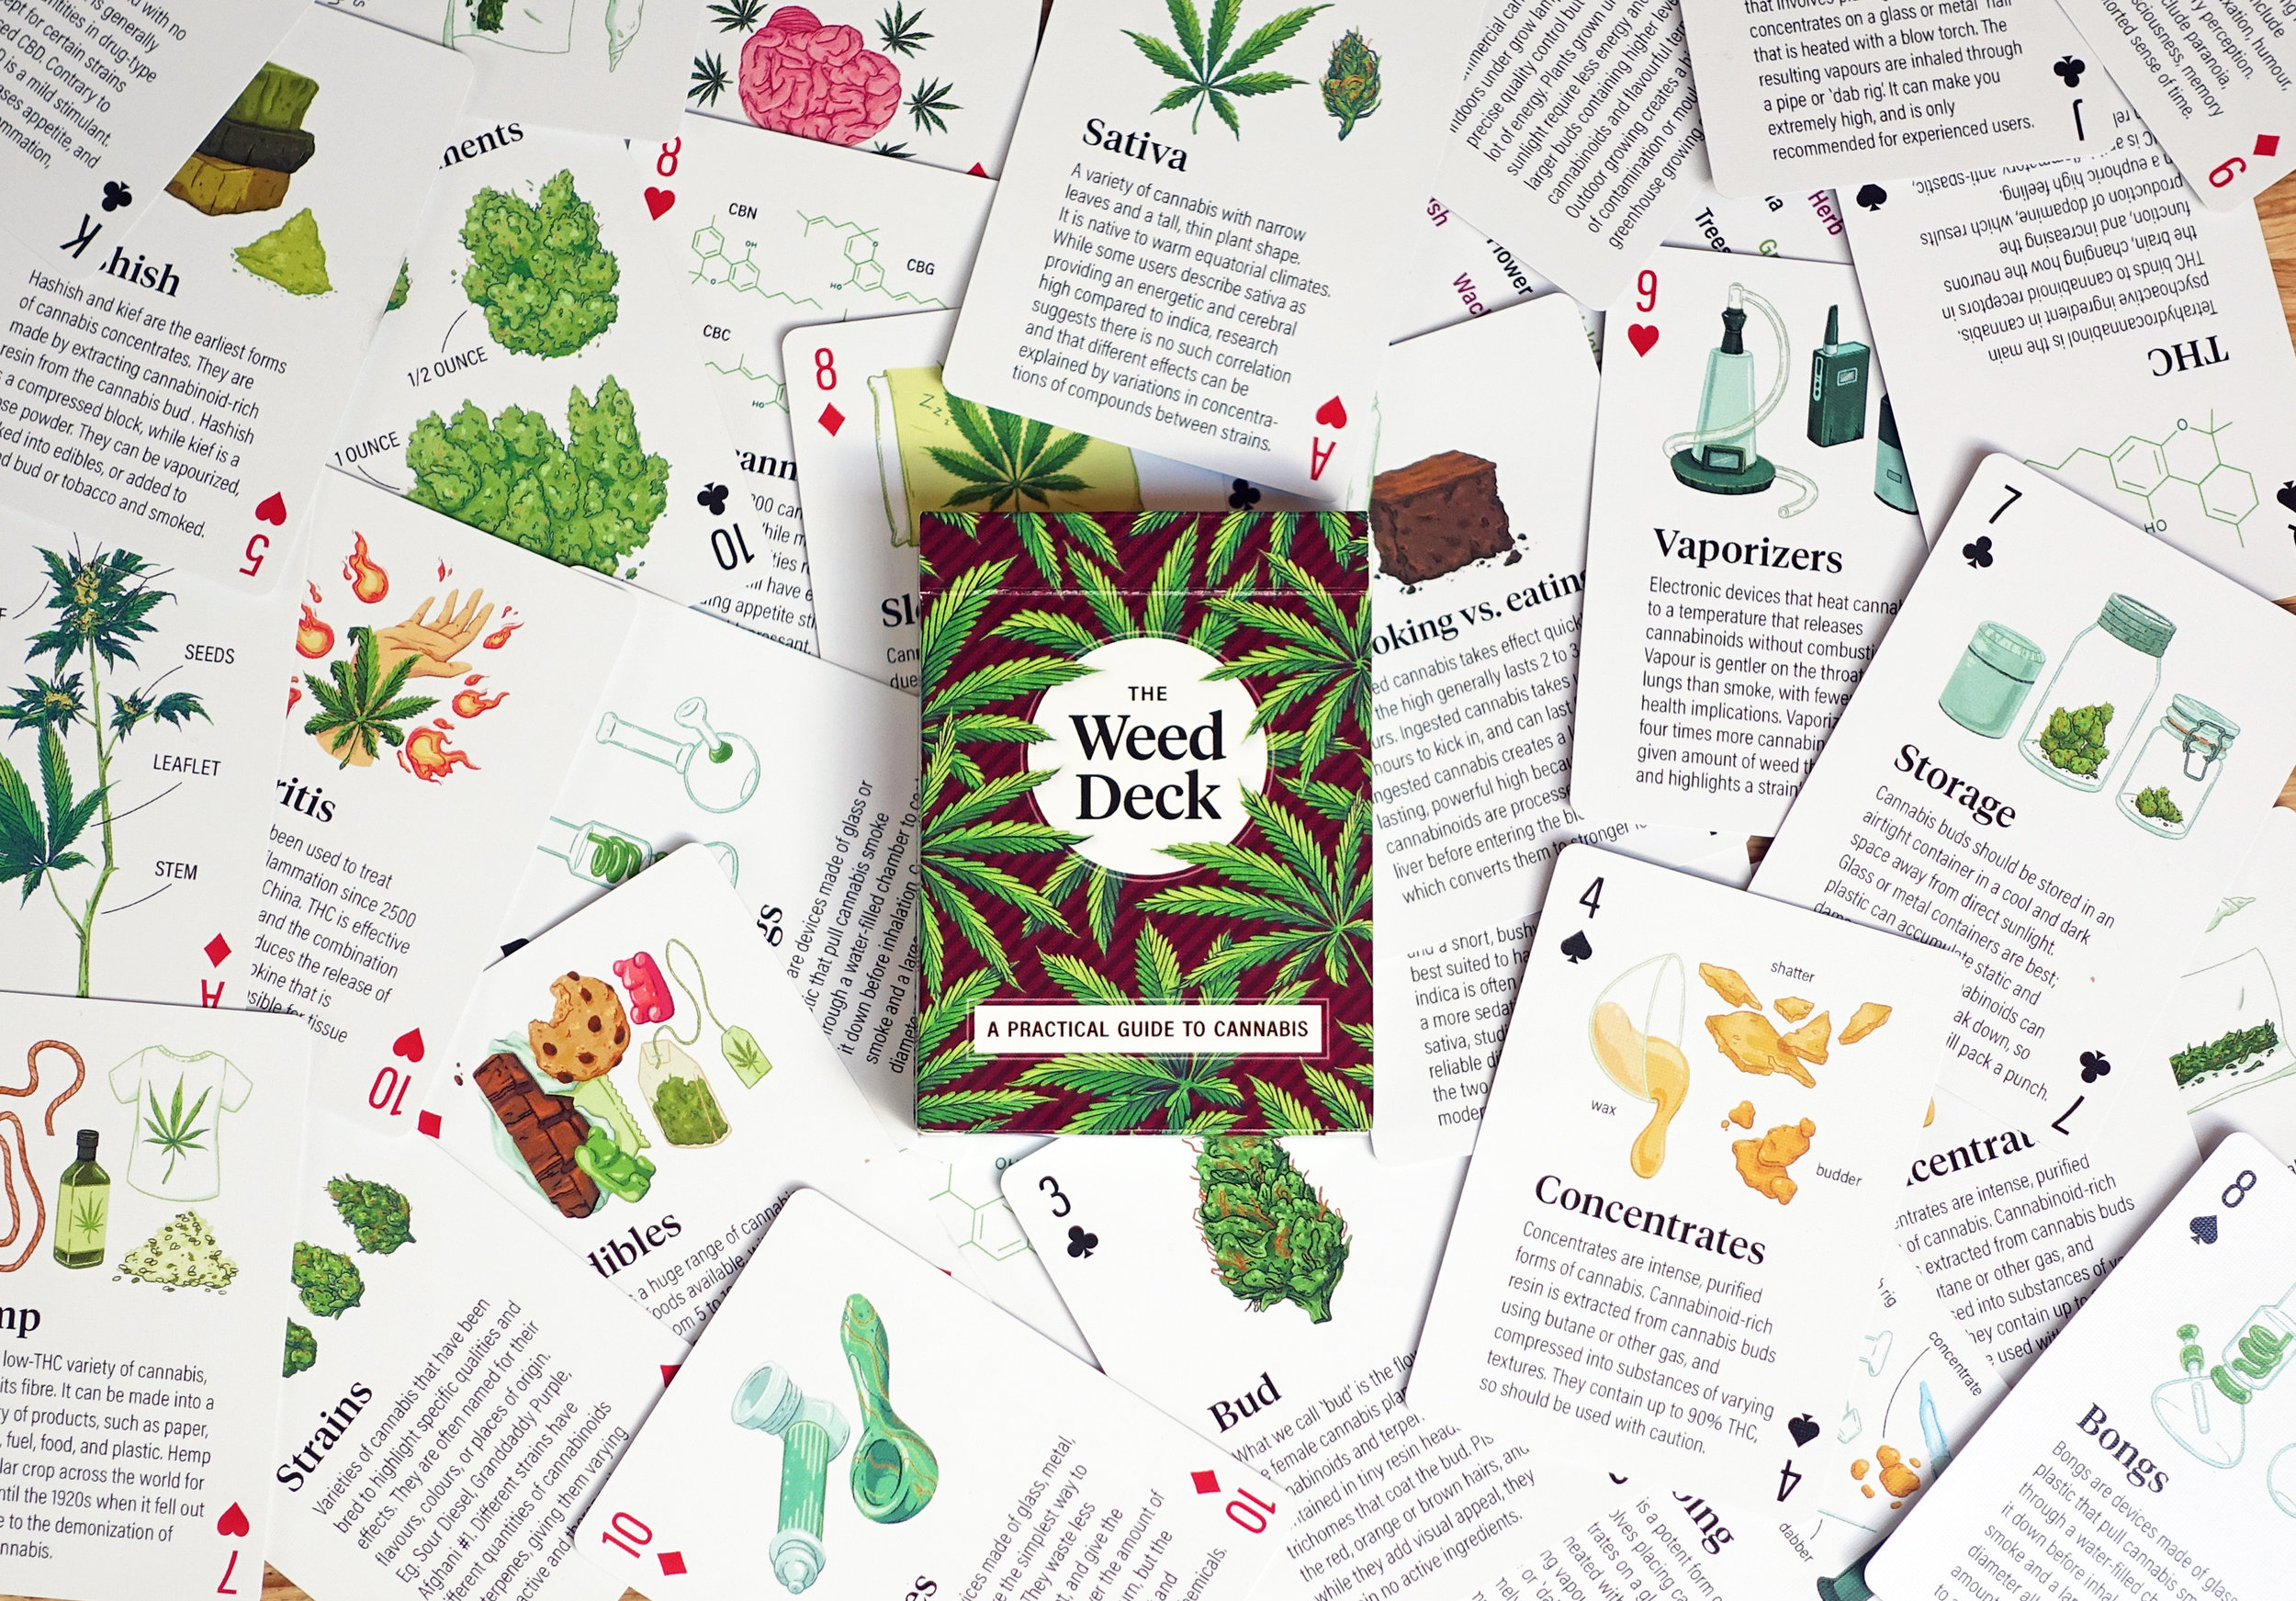 The Weed Deck — The Weed Deck